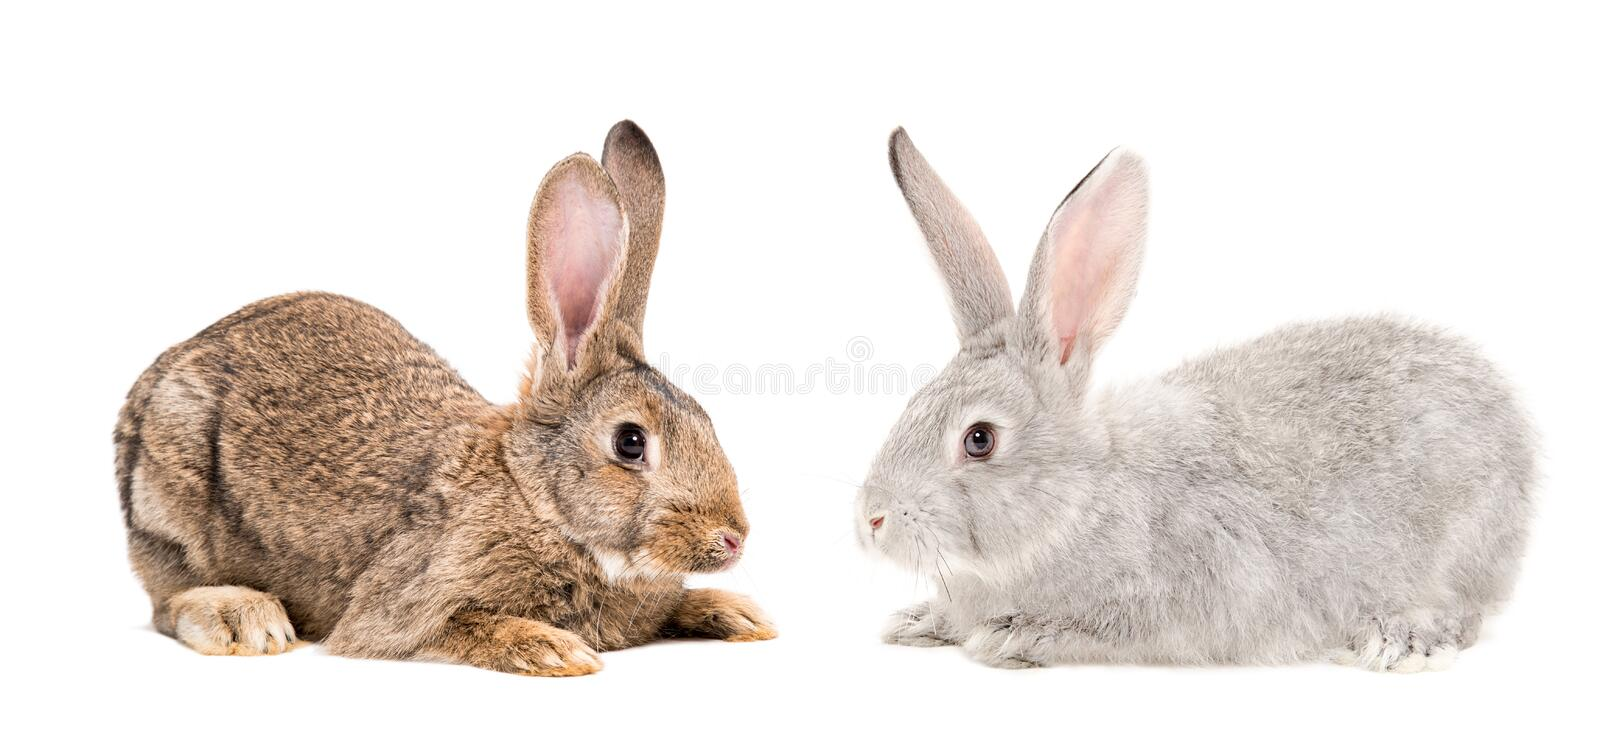 Brown and gray bunnies sitting together. Isolated on white background royalty free stock photography